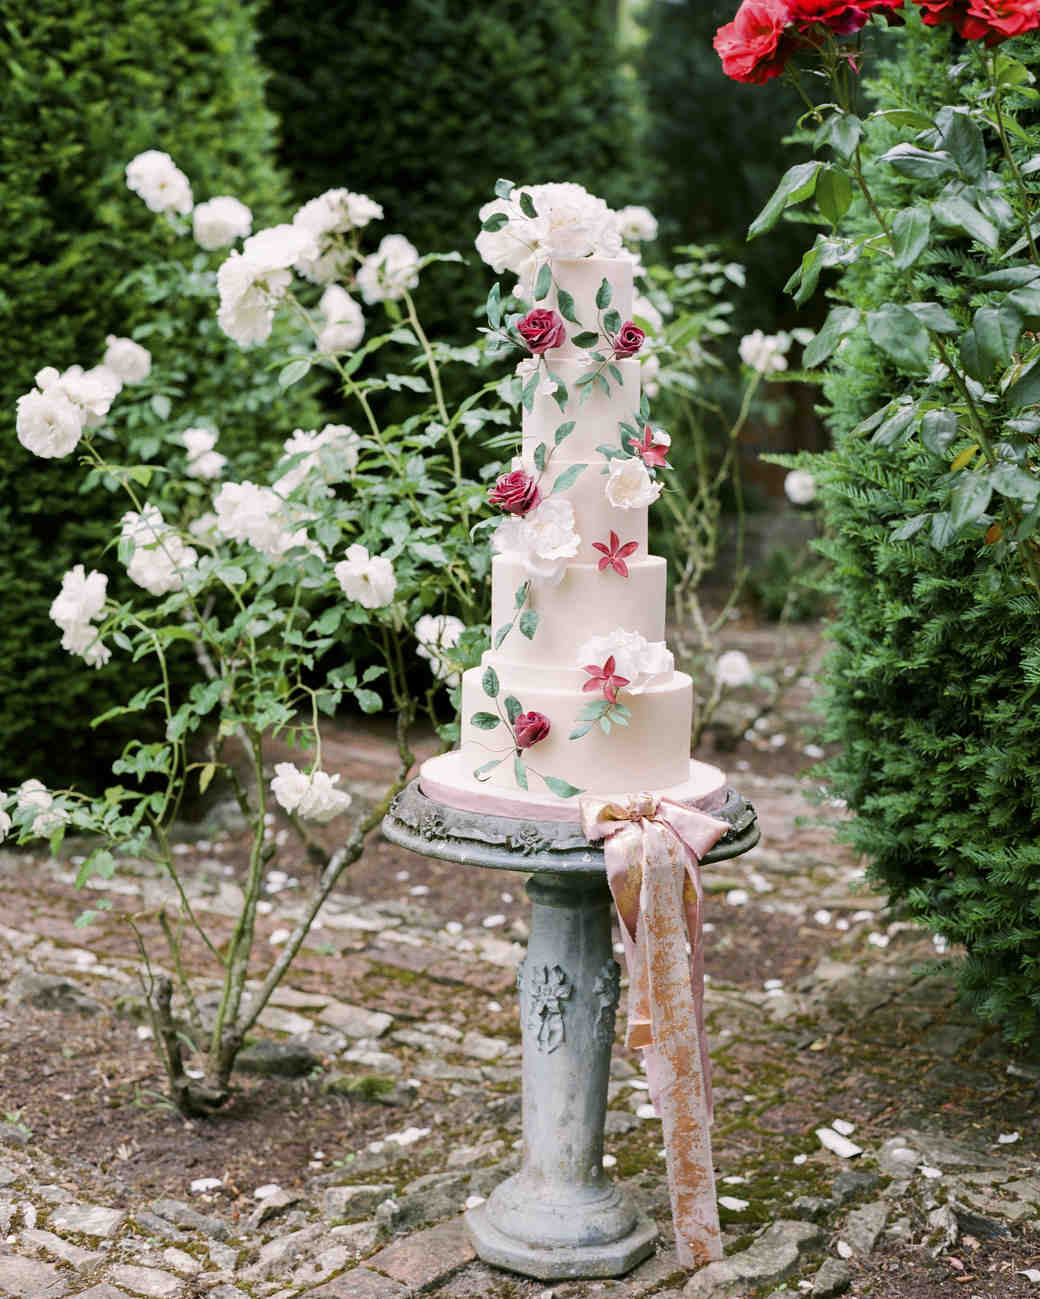 large pink wedding cake with flowers